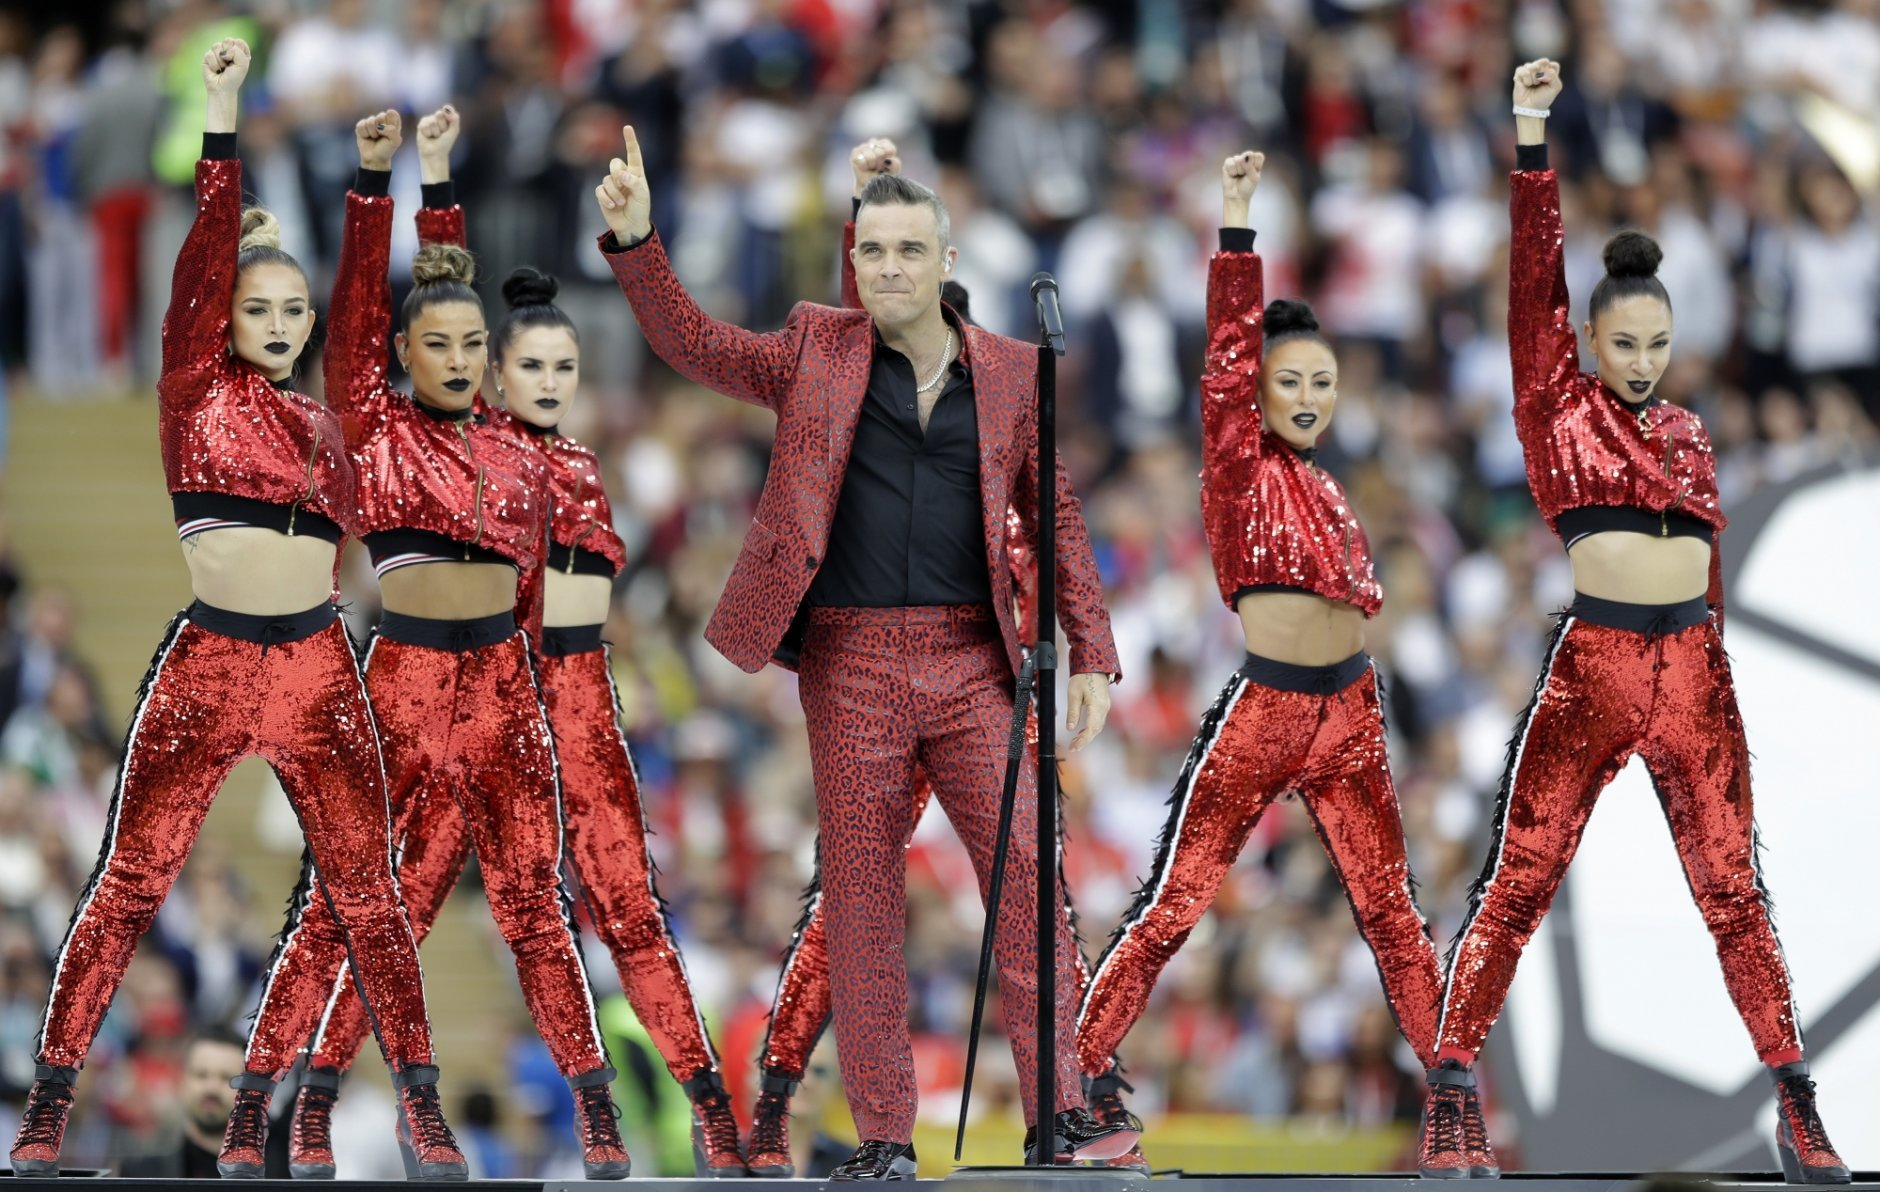 British singer Robbie Williams performs before the group A match between Russia and Saudi Arabia which opens the 2018 soccer World Cup at the Luzhniki stadium in Moscow, Russia, Thursday, June 14, 2018. (AP Photo/Matthias Schrader)